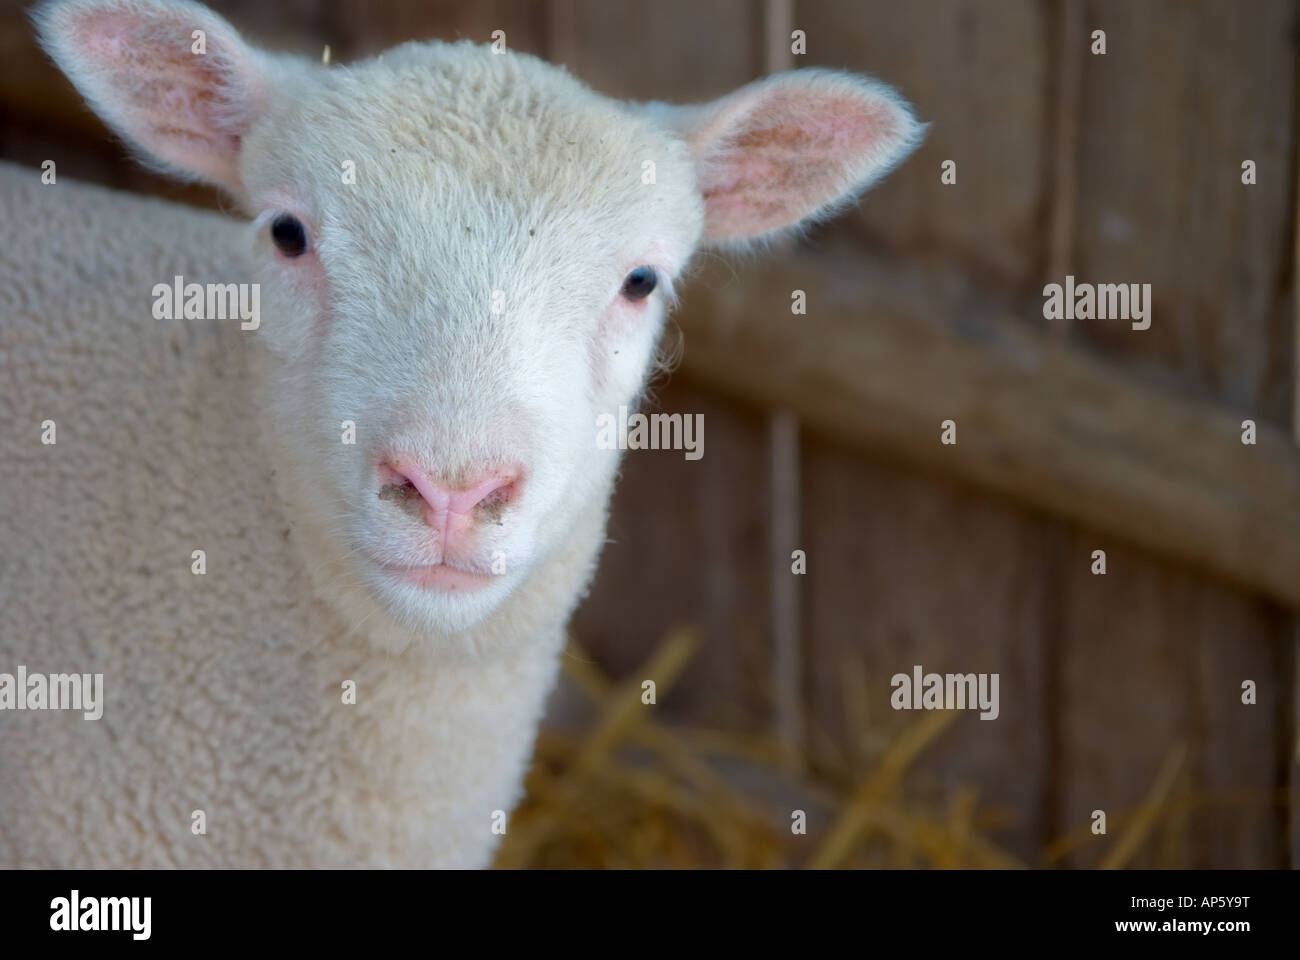 a very cute little baby lamb looks at the camera Stock Photo